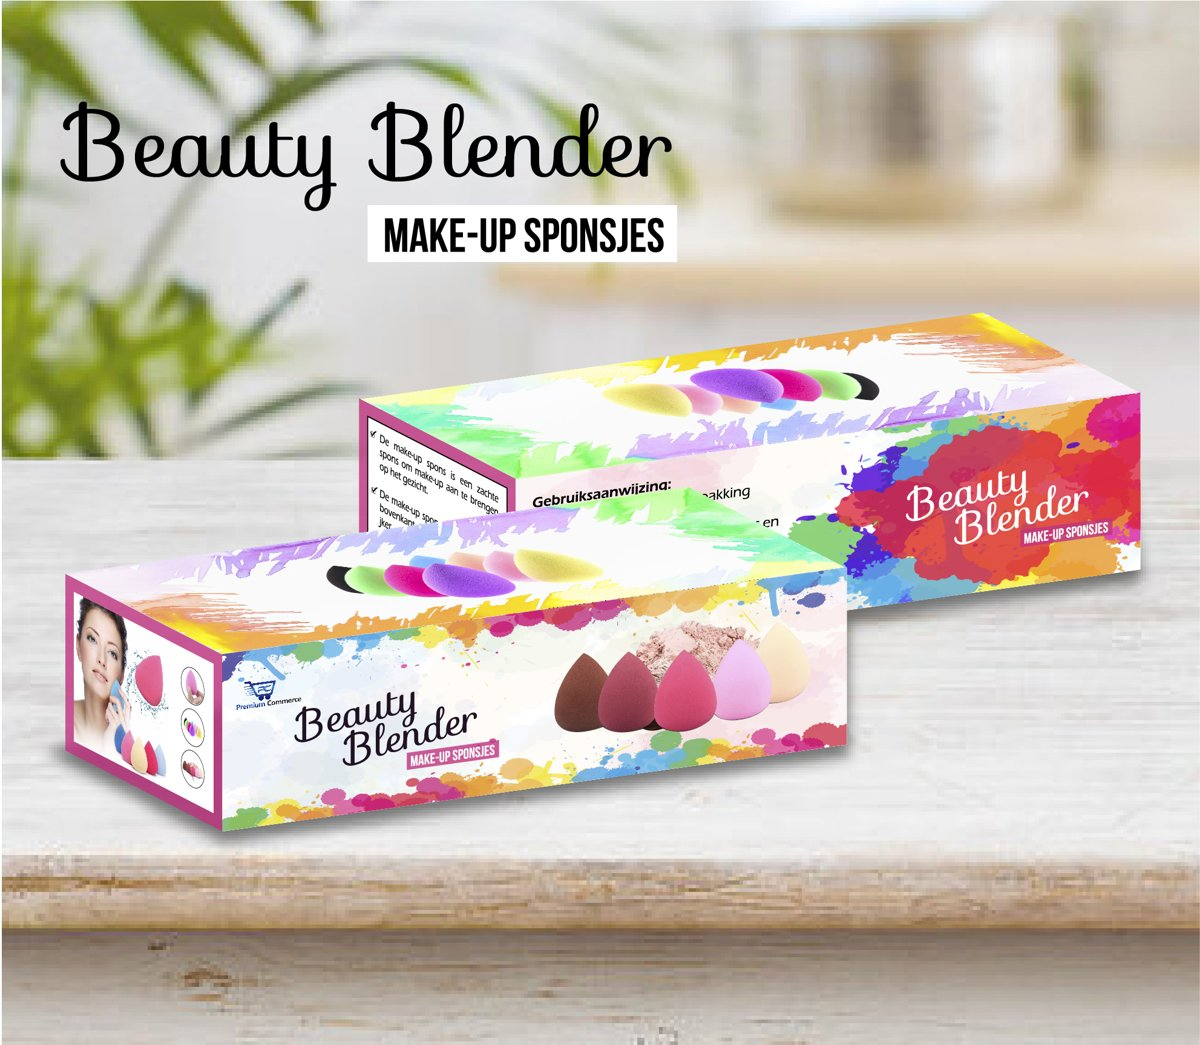 (5 stuks) Make Up Spons - Gezicht Sponsje - Foundation Blender - Beauty Blender - Poeder - Make-Up + Gratis Spons Met Platte Kant